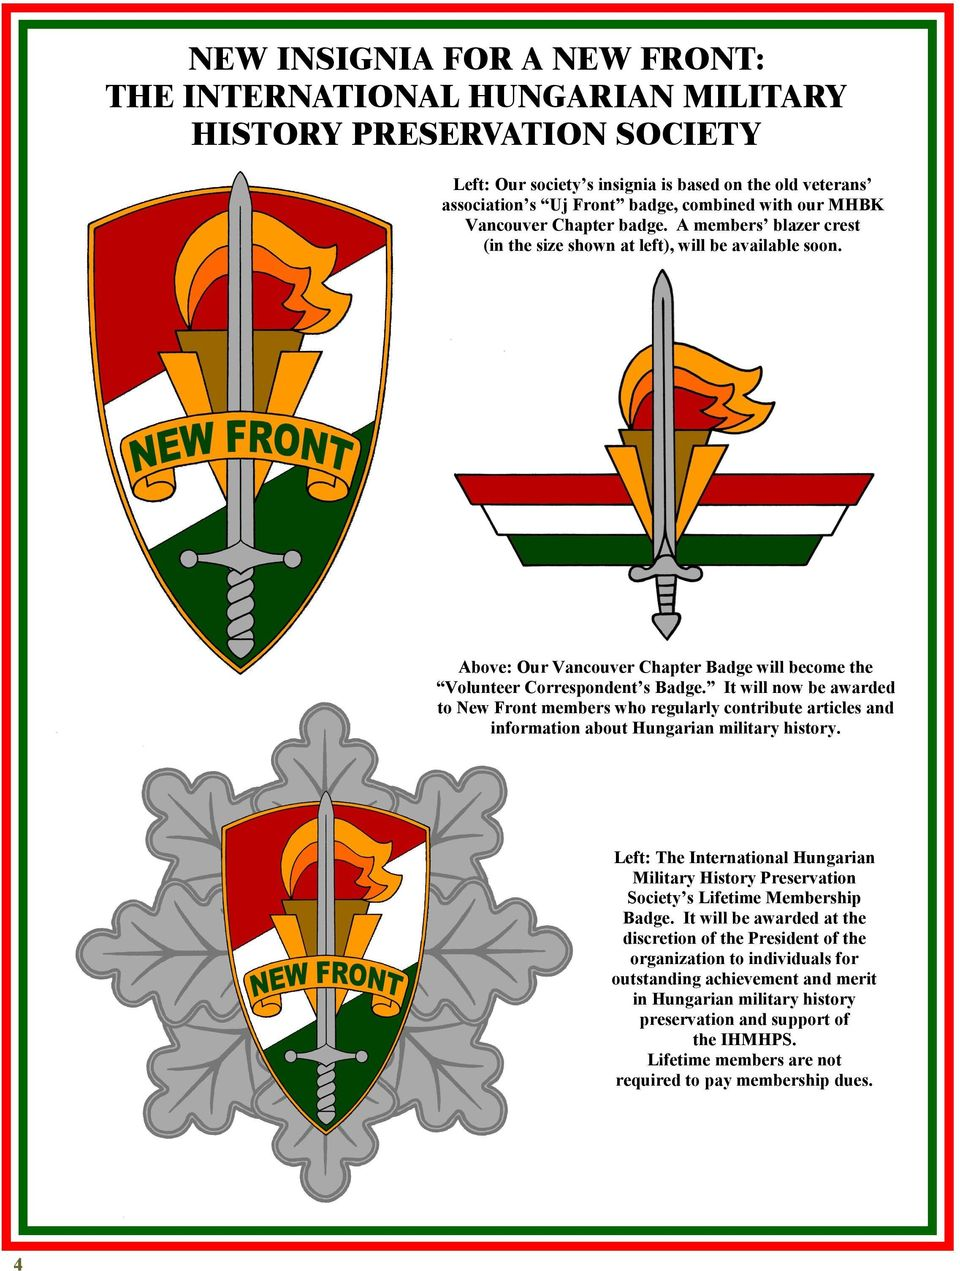 It will now be awarded to New Front members who regularly contribute articles and information about Hungarian military history.